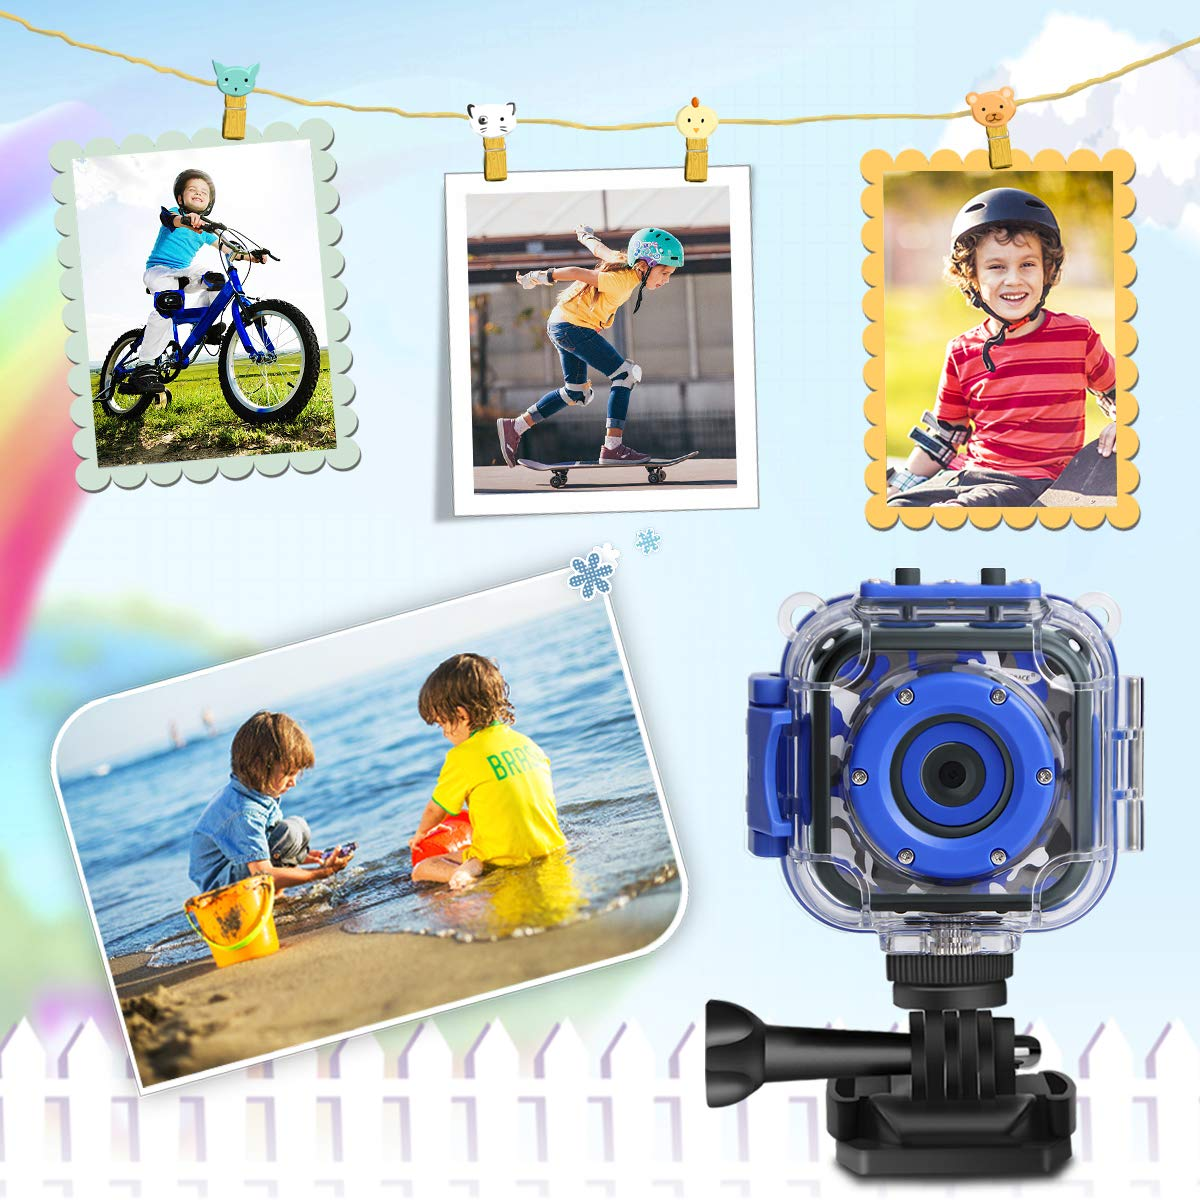 [Upgraded] PROGRACE Kids Waterproof Camera Action Video Digital Camera 1080 HD Camcorder for Boys Toys Gifts Build-in Game(Blue)  by Prograce (Image #7)